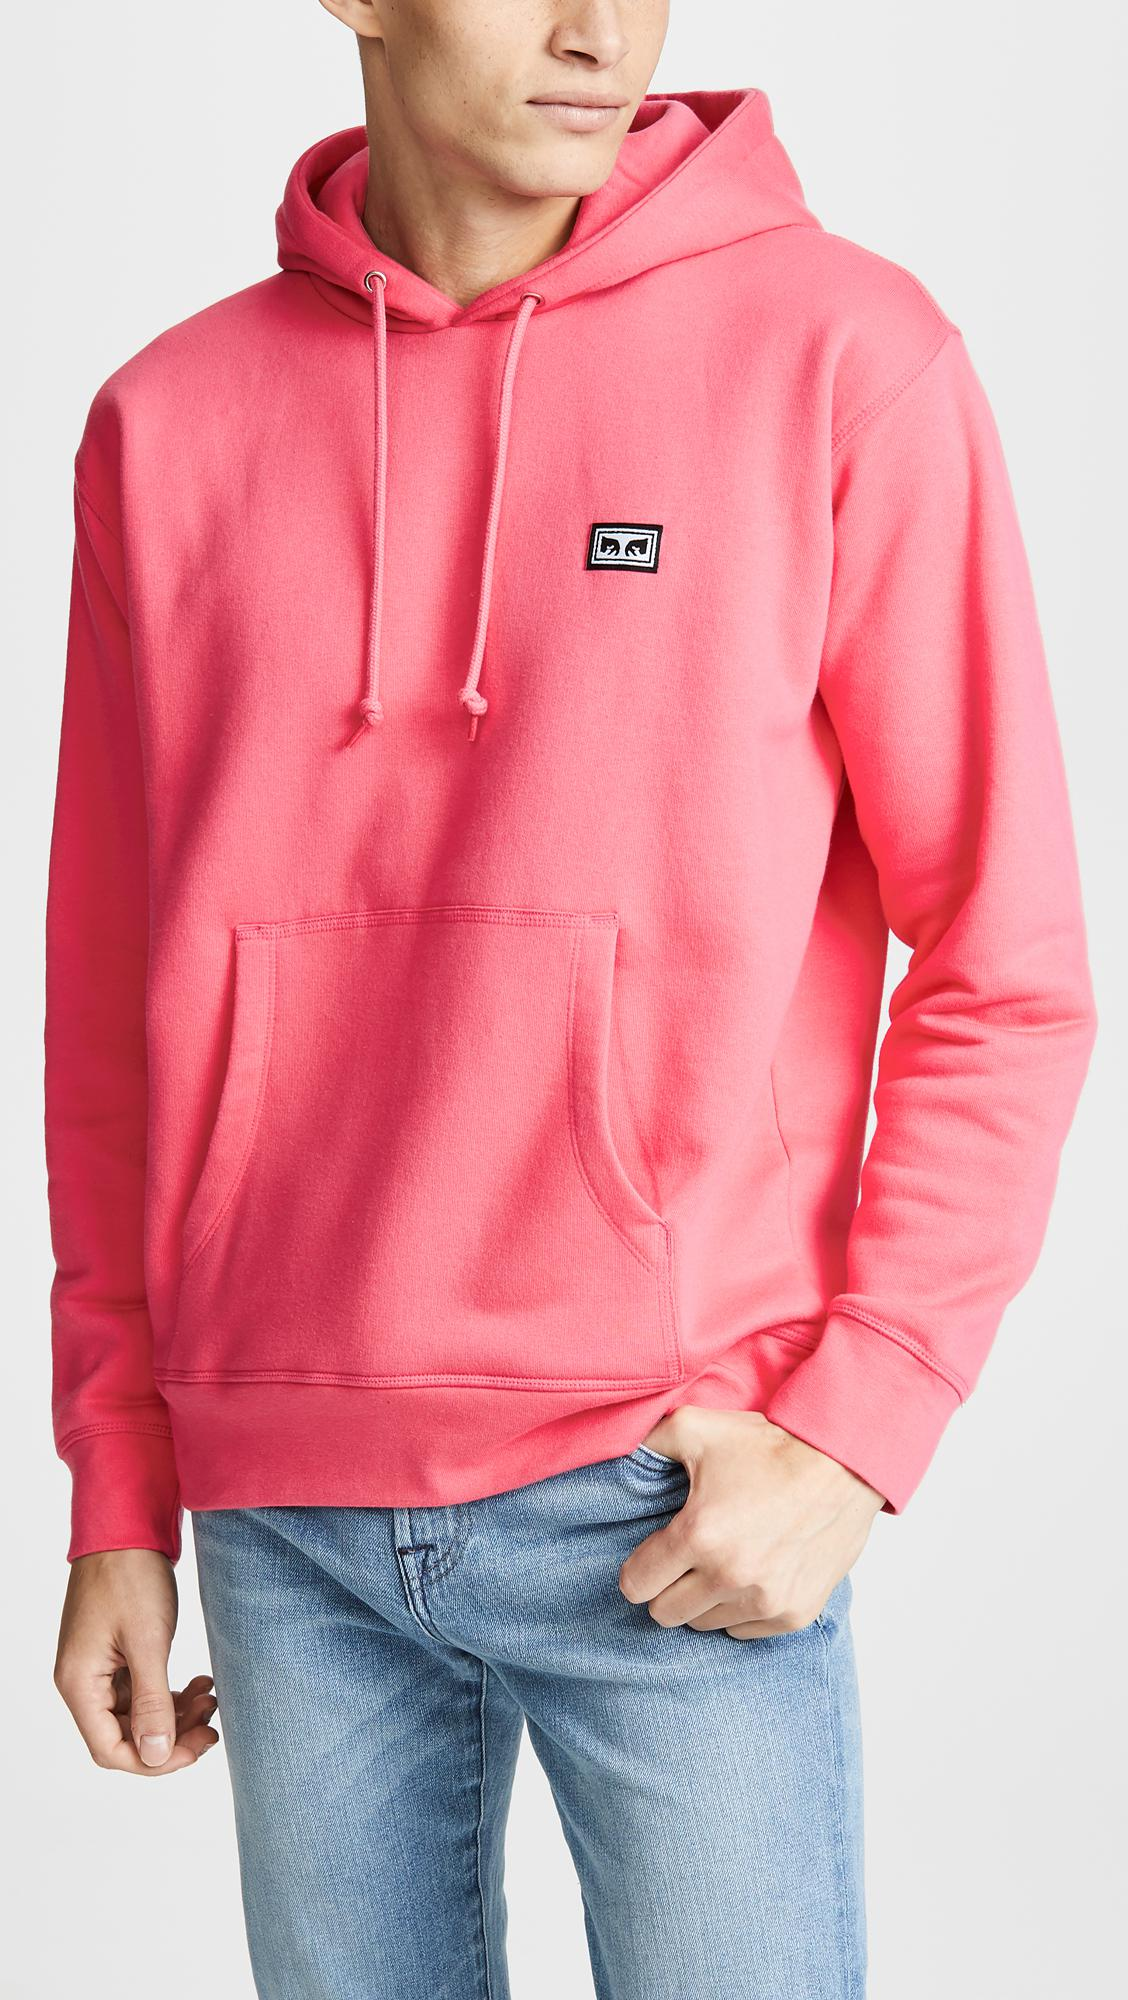 59f7a0383ef8 Obey All Eyez Hoodie in Pink for Men - Lyst